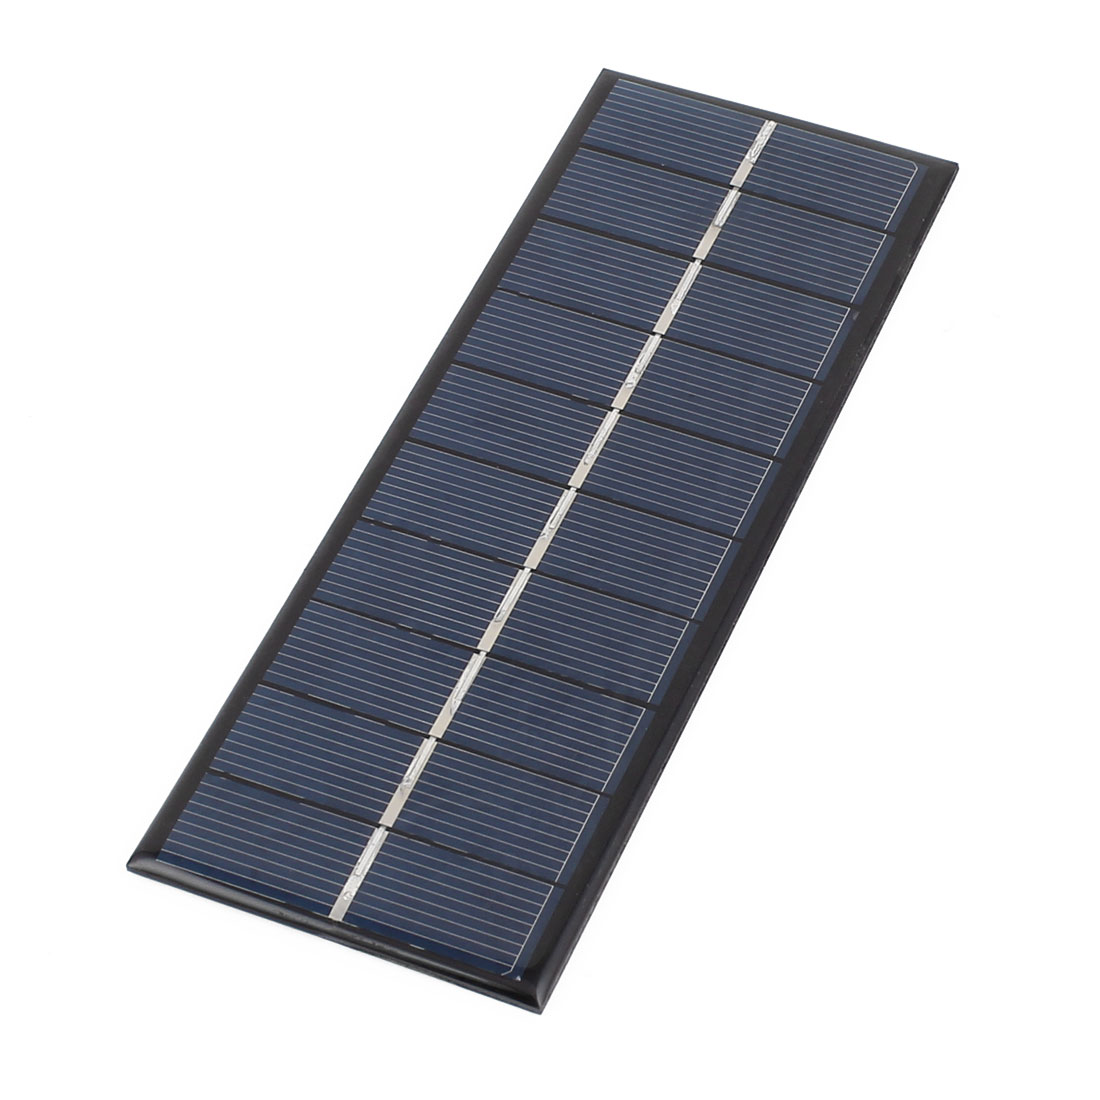 5V 1.3W DIY Polycrystallinesilicon Solar Panel Power Cell Battery Charger 163mm x 60mm